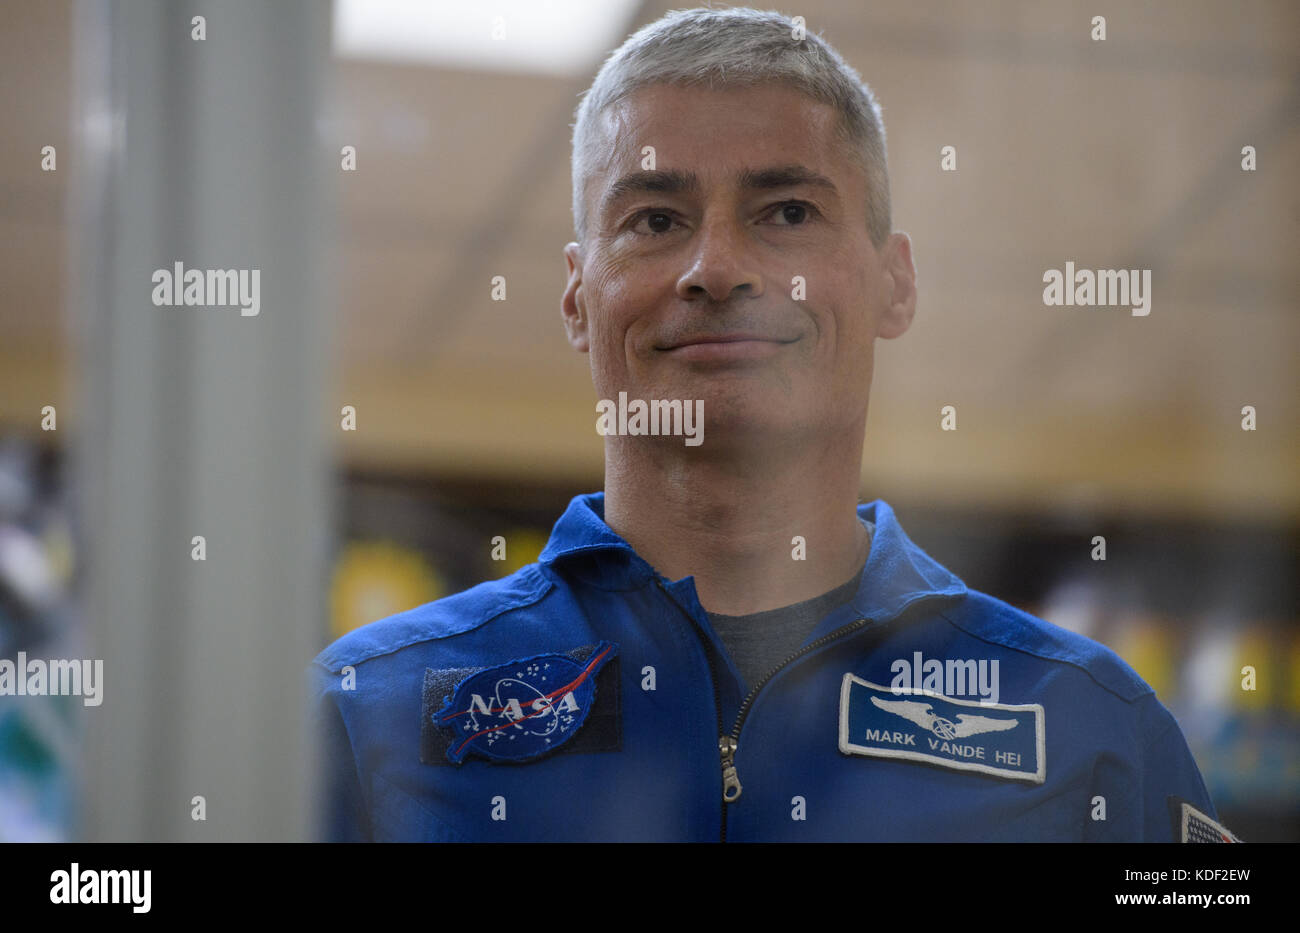 NASA International Space Station Expedition 52 Soyuz MS-05 backup crew member American astronaut Mark Vande Hei Stock Photo